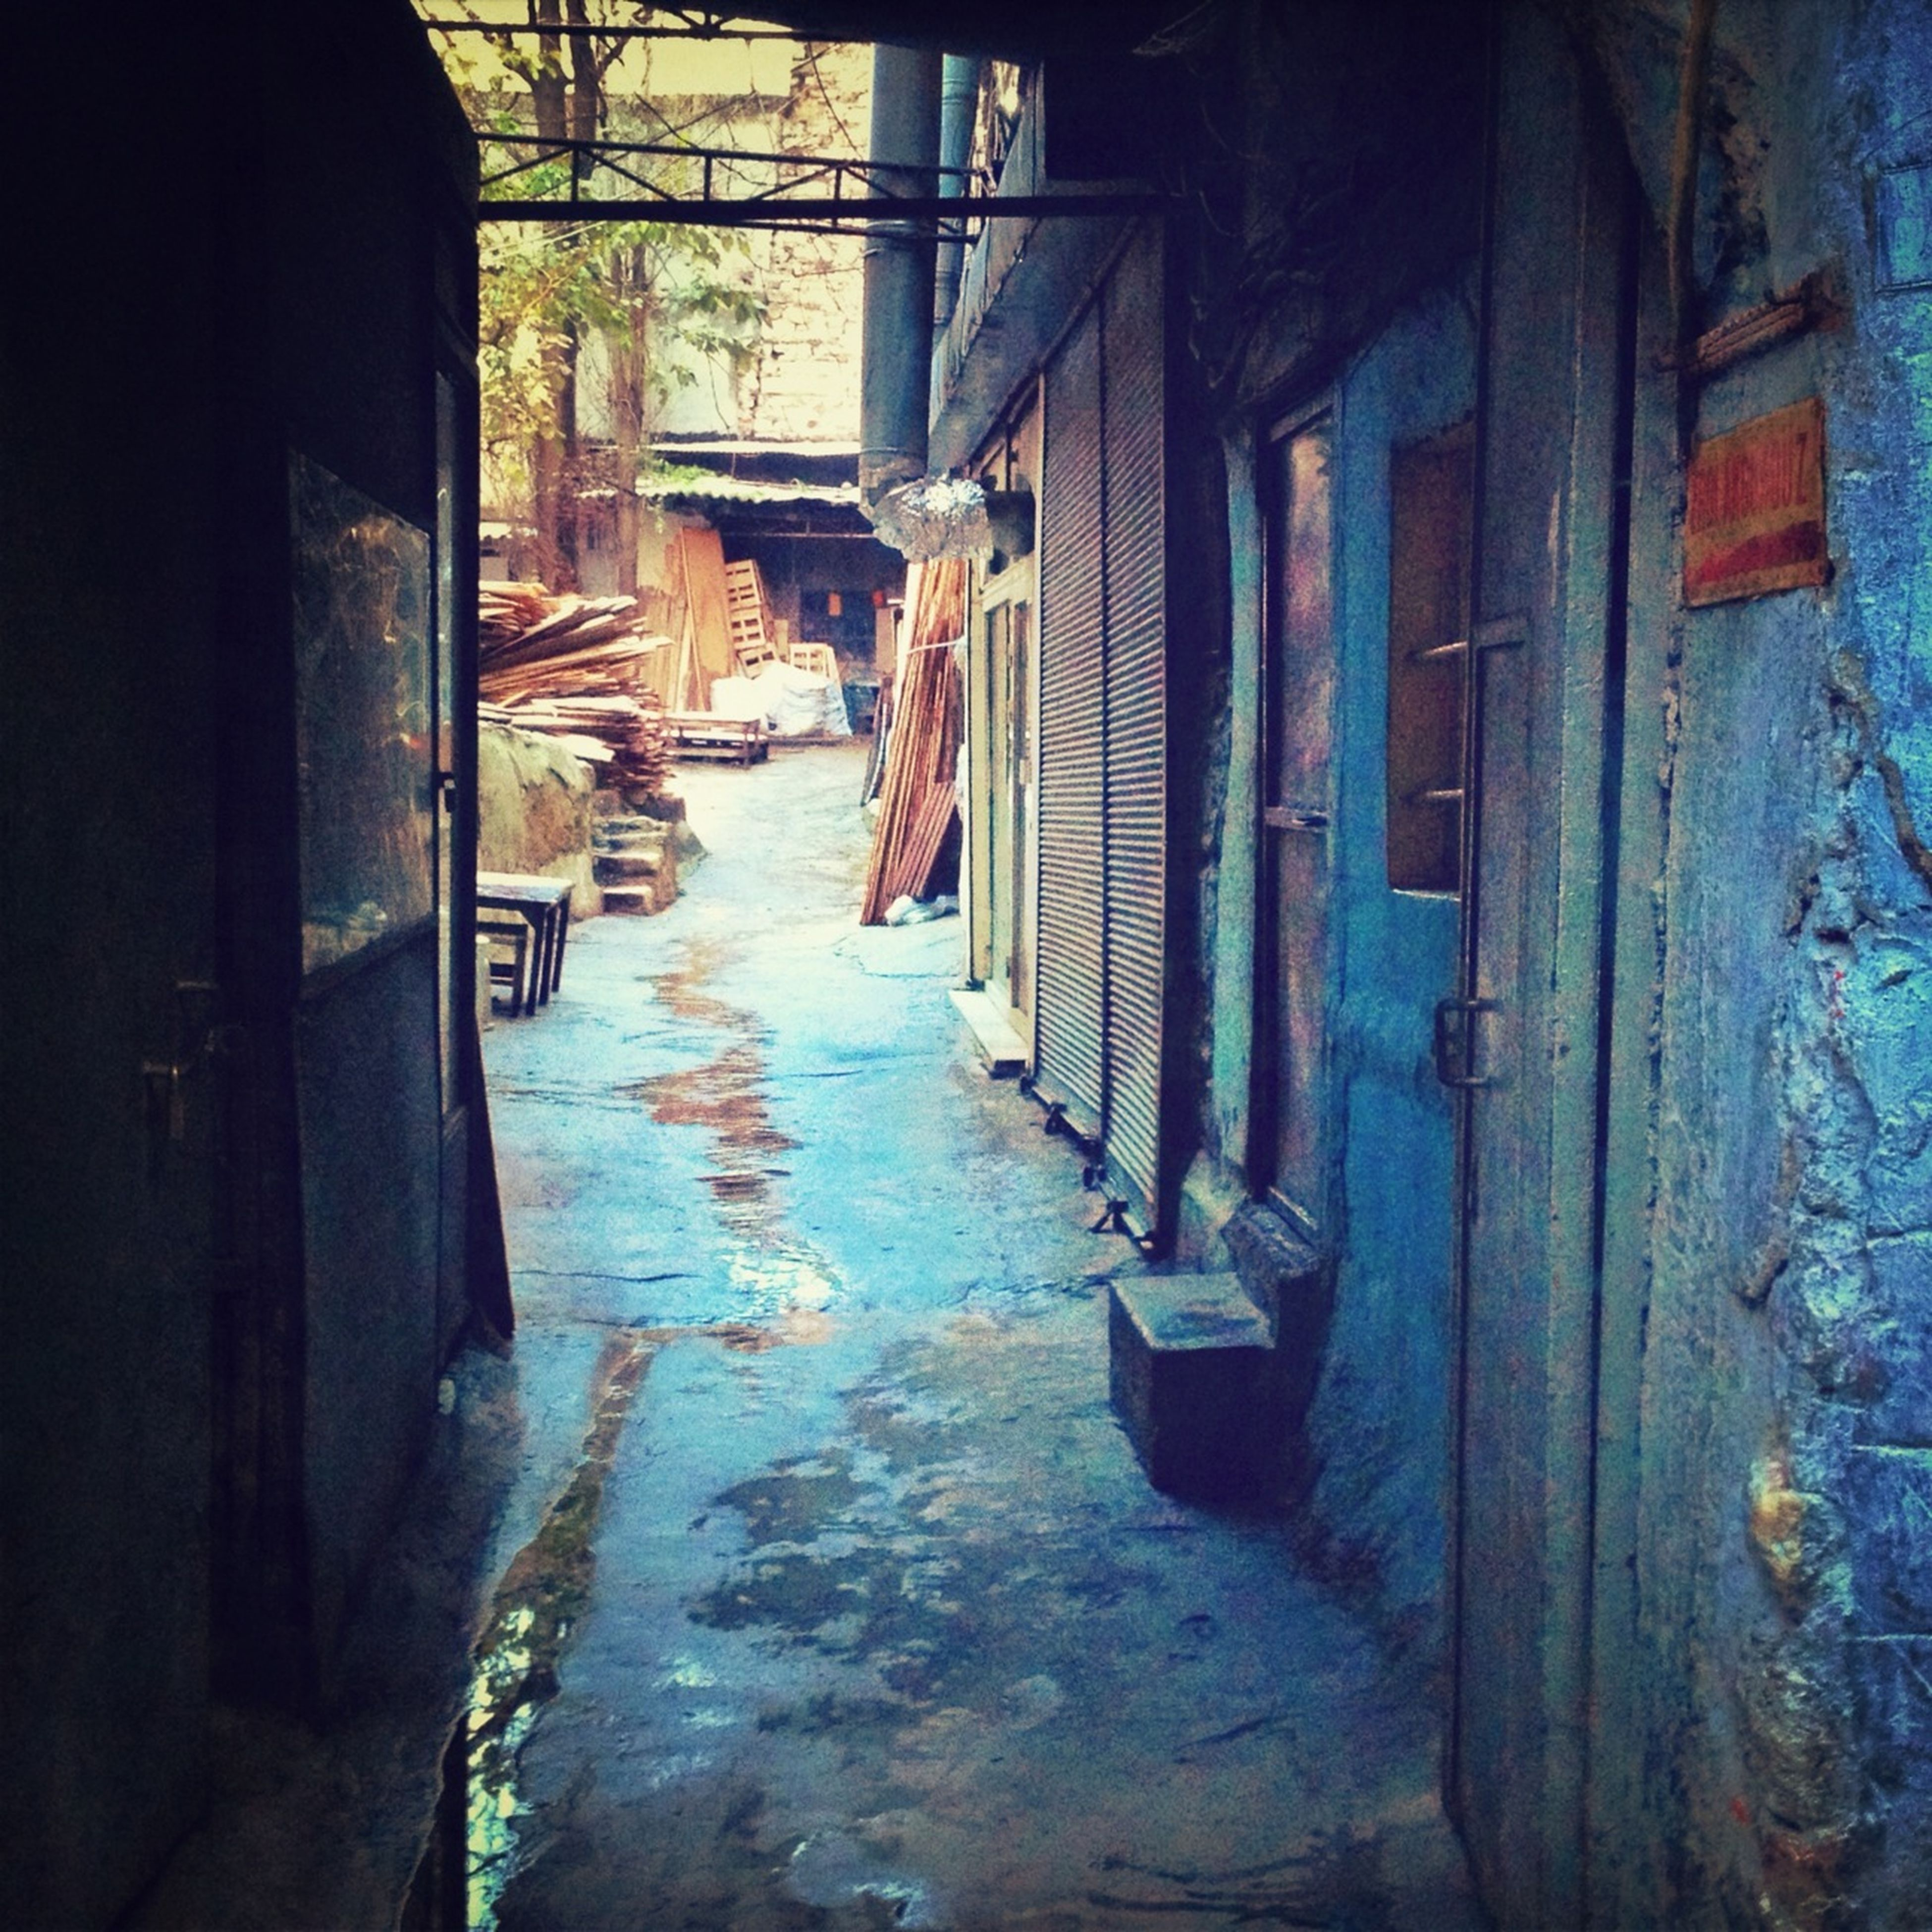 architecture, built structure, building exterior, the way forward, house, alley, residential structure, building, street, narrow, residential building, door, abandoned, walkway, diminishing perspective, wall - building feature, day, domestic animals, no people, outdoors